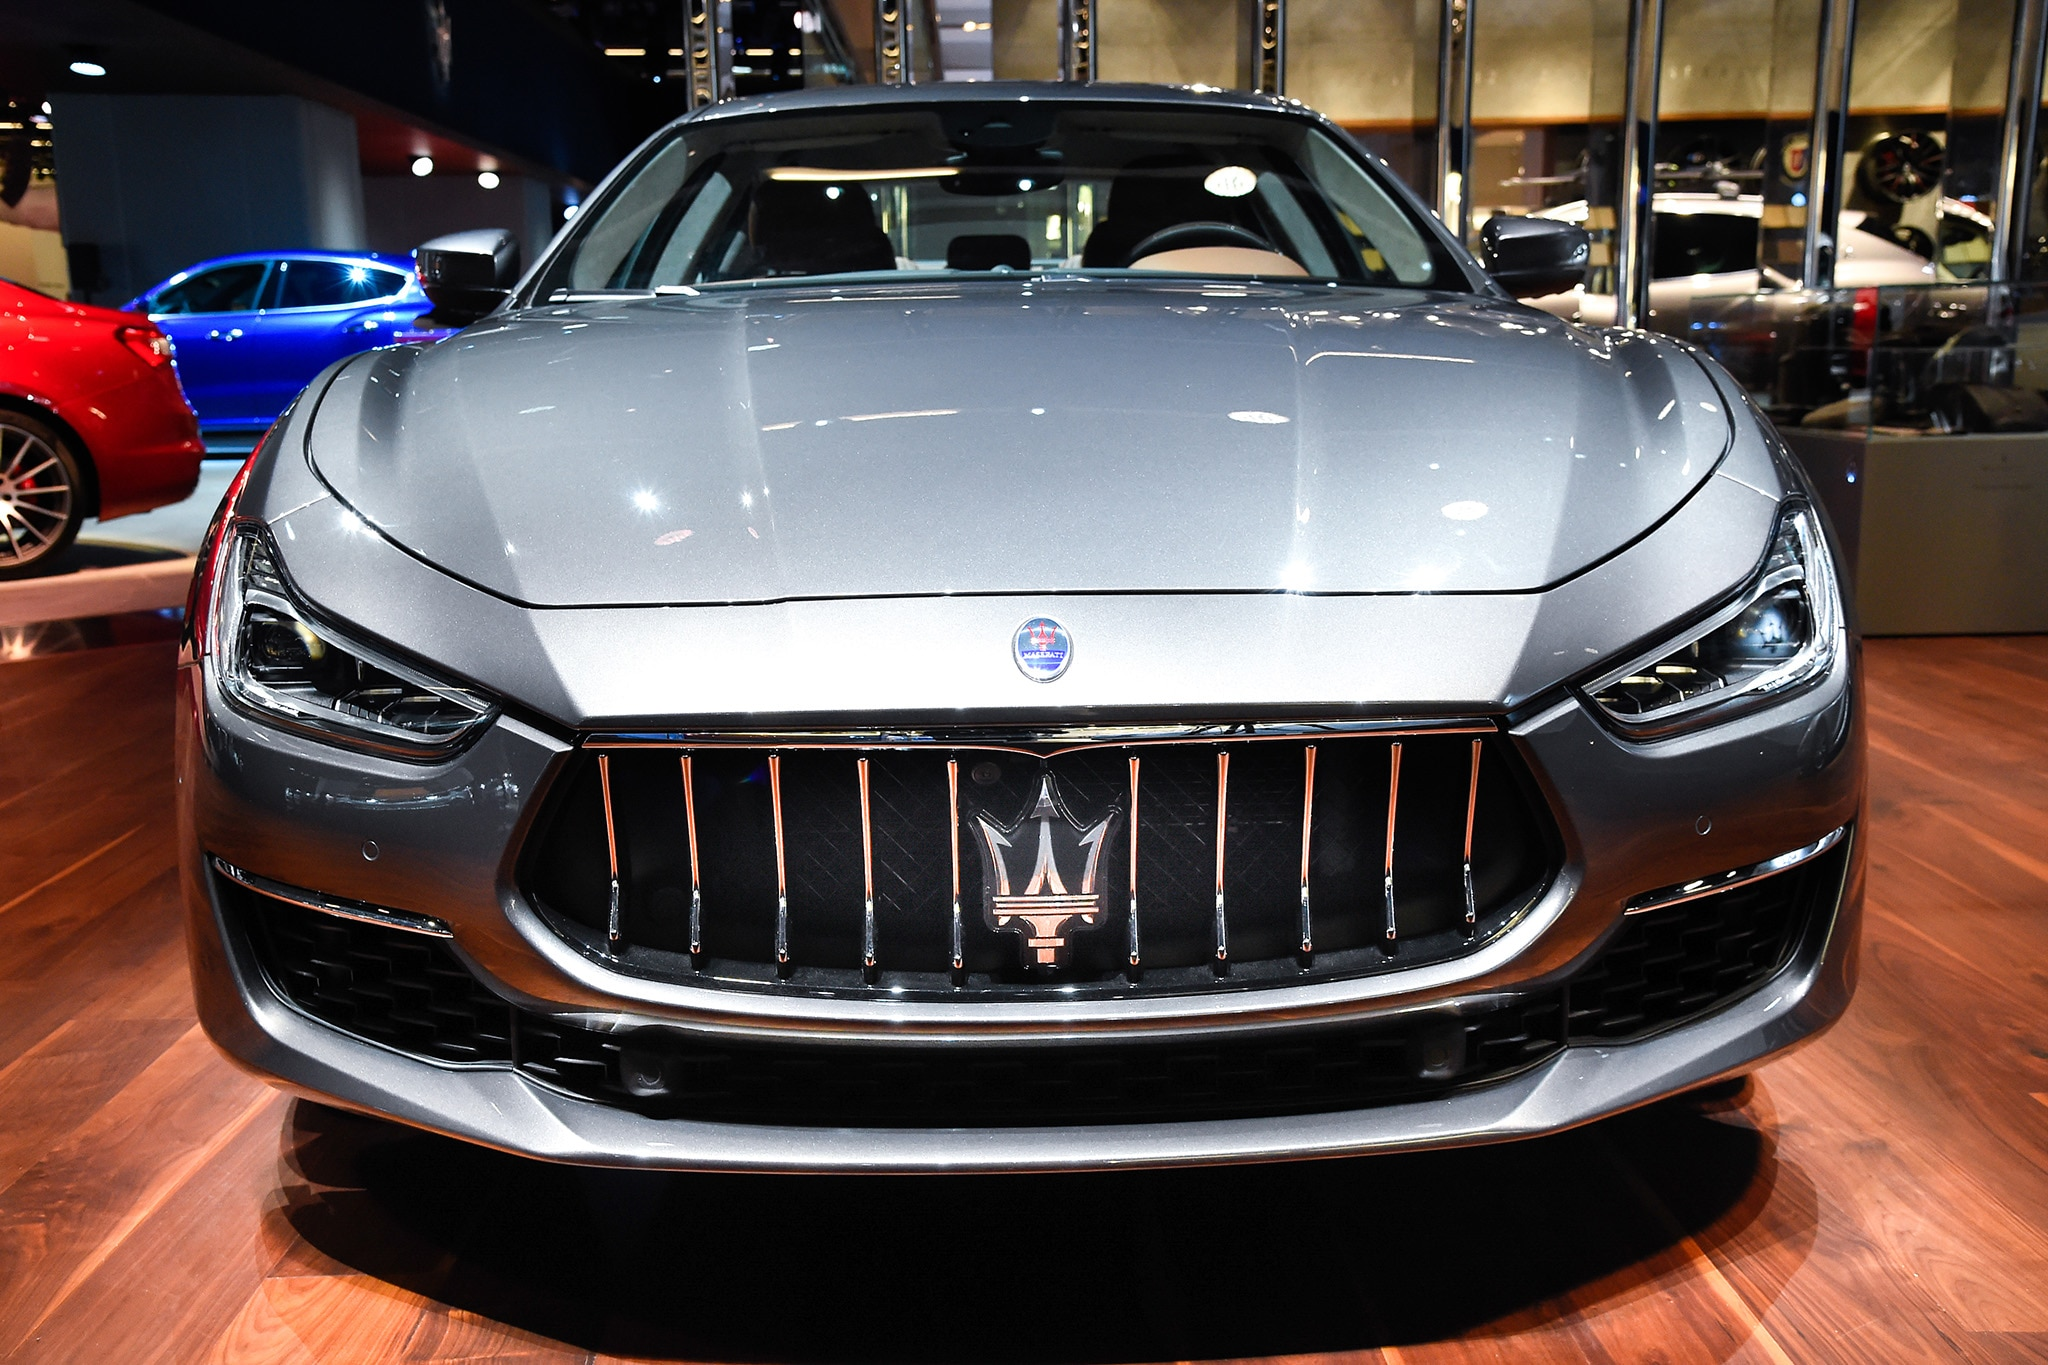 maserati refreshes ghibli for 2018 with new face updated powertrain automobile magazine. Black Bedroom Furniture Sets. Home Design Ideas